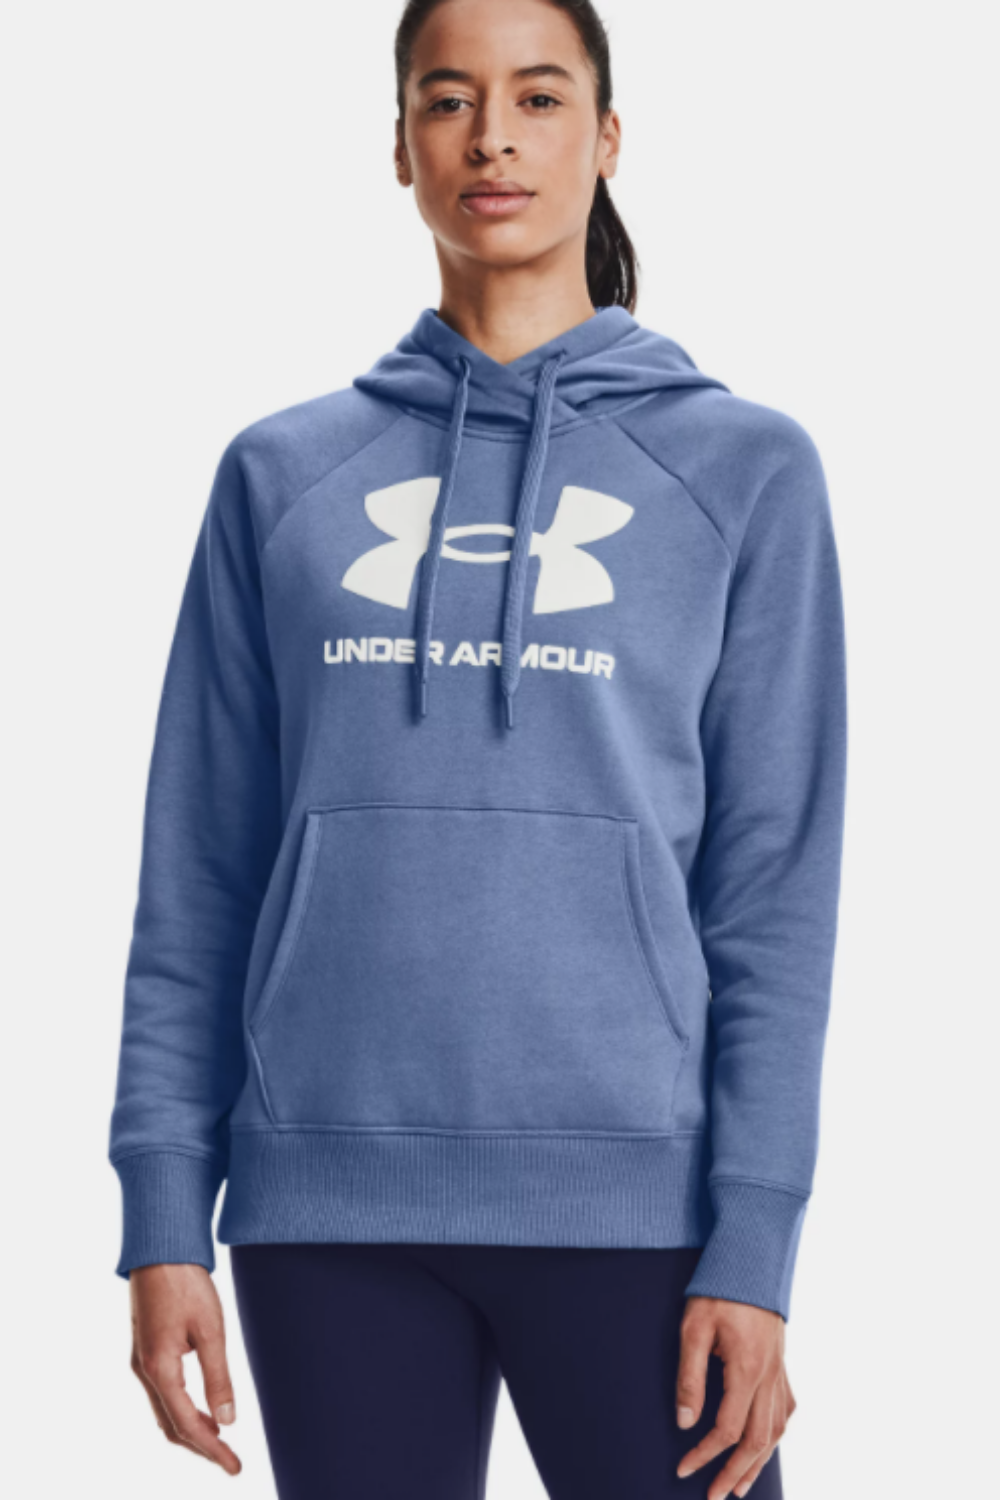 Under Armour Outlet Extra 30% off